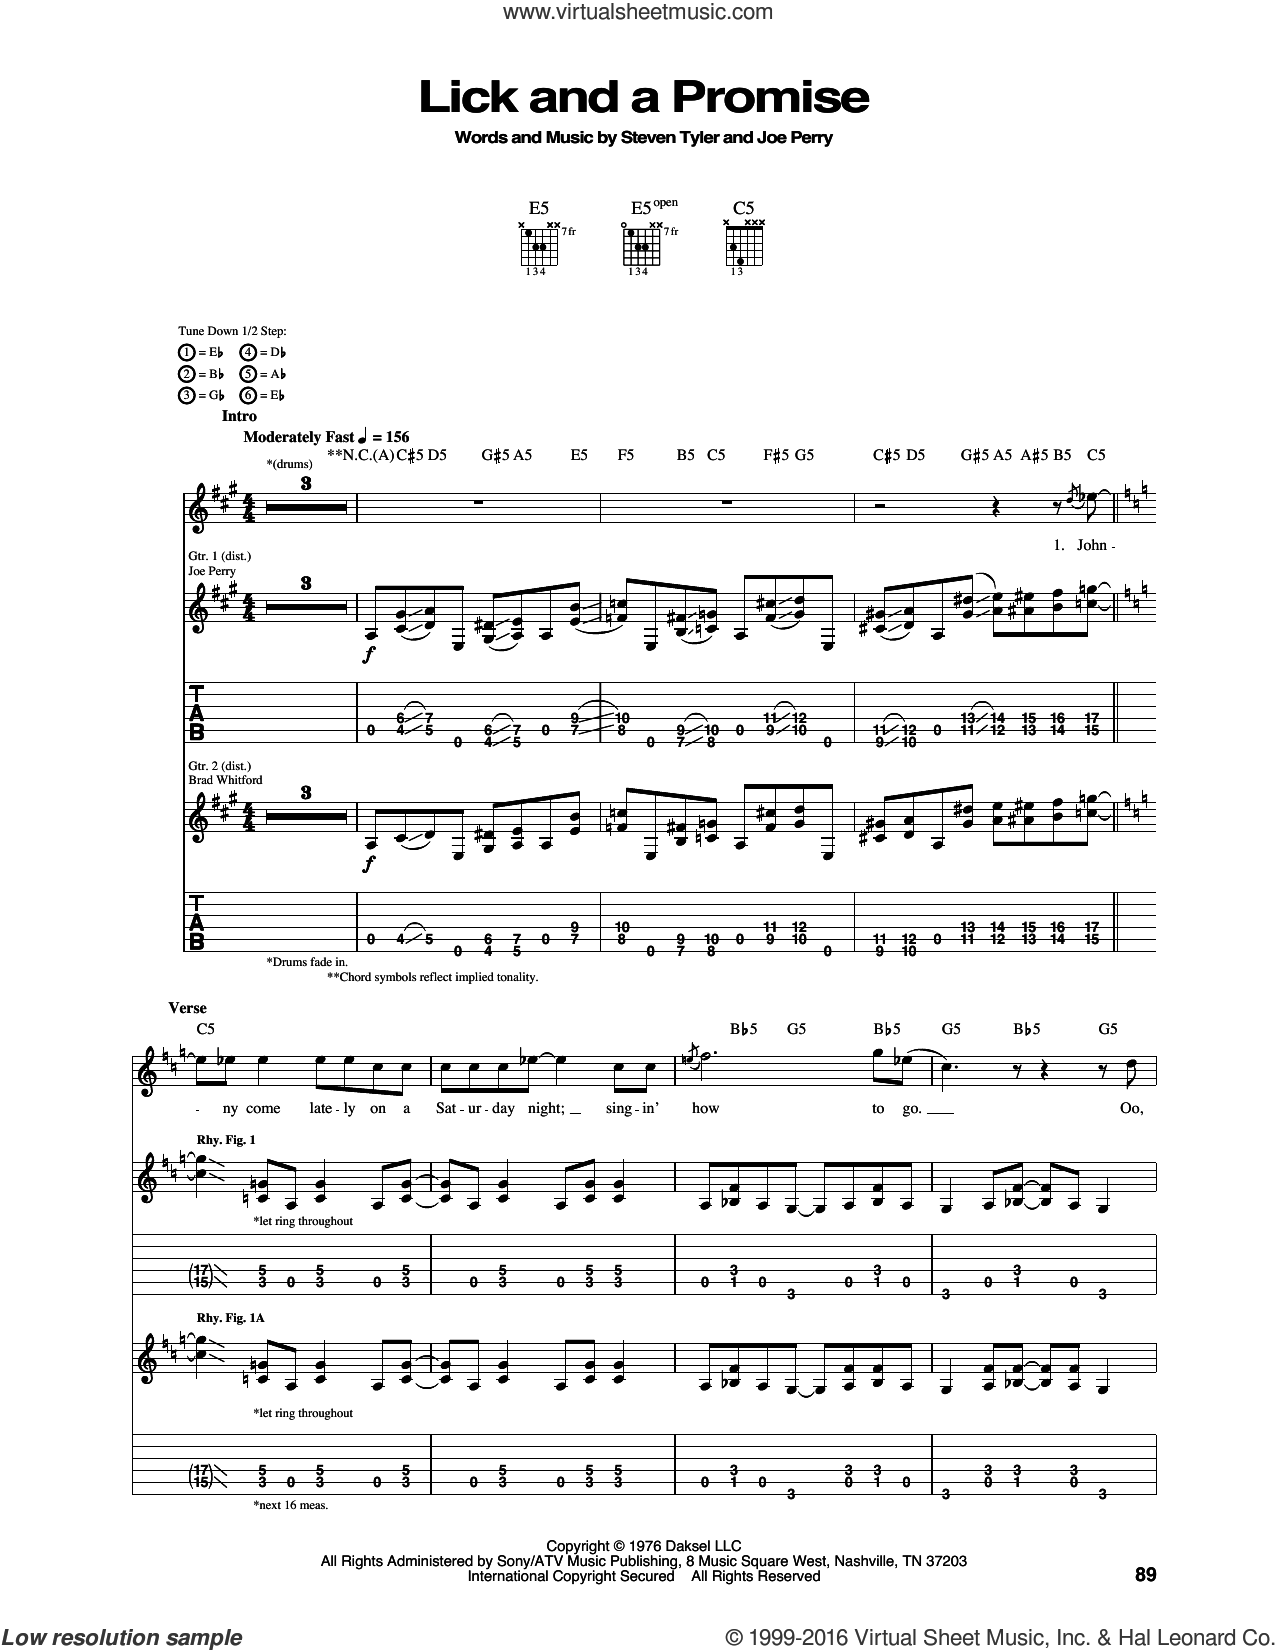 Lick And A Promise sheet music for guitar (tablature) by Aerosmith, Joe Perry and Steven Tyler, intermediate skill level